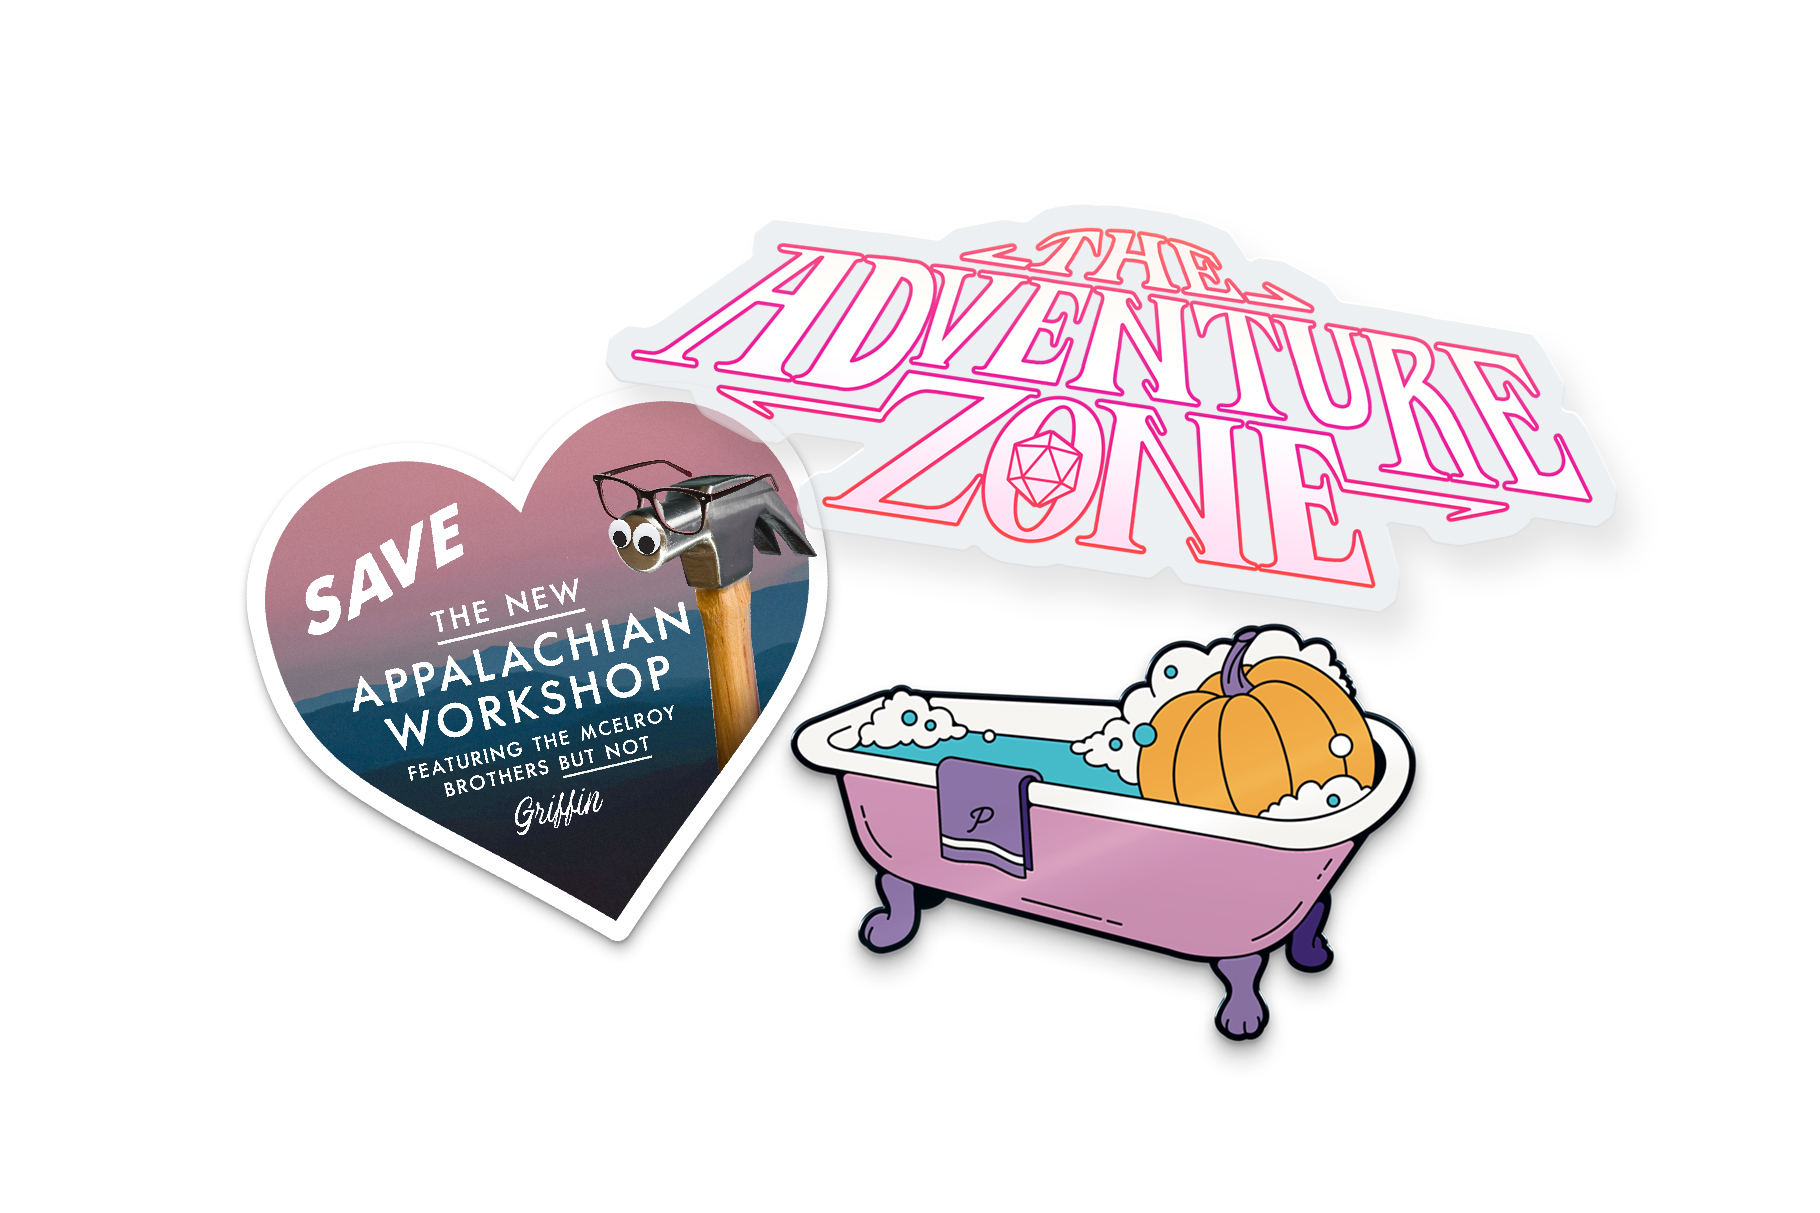 "The three May McElroy merch items. Starting at the left is a heart shaped sticker. The background is a pink sky with blue mountains and a hammer with googly eyes and glasses. It says, ""SAVE the New Appalachian Workshop Featuring the McElroy Brothers but not Griffin."" Above to the right is a car decal that says ""The Adventure Zone"" outlined in pink. Below that is an enamel pin of a pumpkin in a pink tub with bubbles."